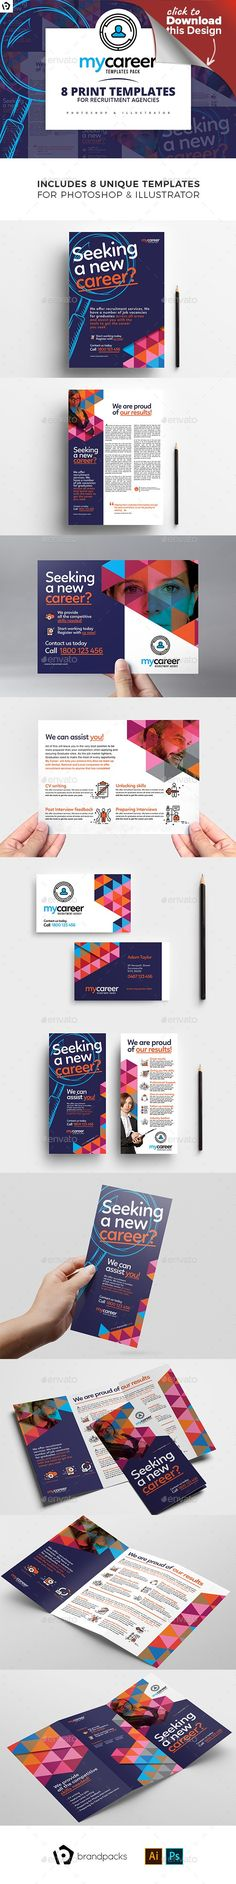 agencies, ai, BrandPacks, brochure, brochure template, business card, clean, corporate, dl, dl card template, flyer, flyer design, flyers, geometric, illustrator, modern, pattern, photoshop, poster, posters, psd, purple, rack card, recruitment, recruitment agency, tri-fold, trifold, vector Recruitment Agency Templates Pack for Adobe Photoshop & Adobe Illustrator This set of readymade print templates are ideal for recruitment agencies, lawyers, accountants and other corporate / profes...